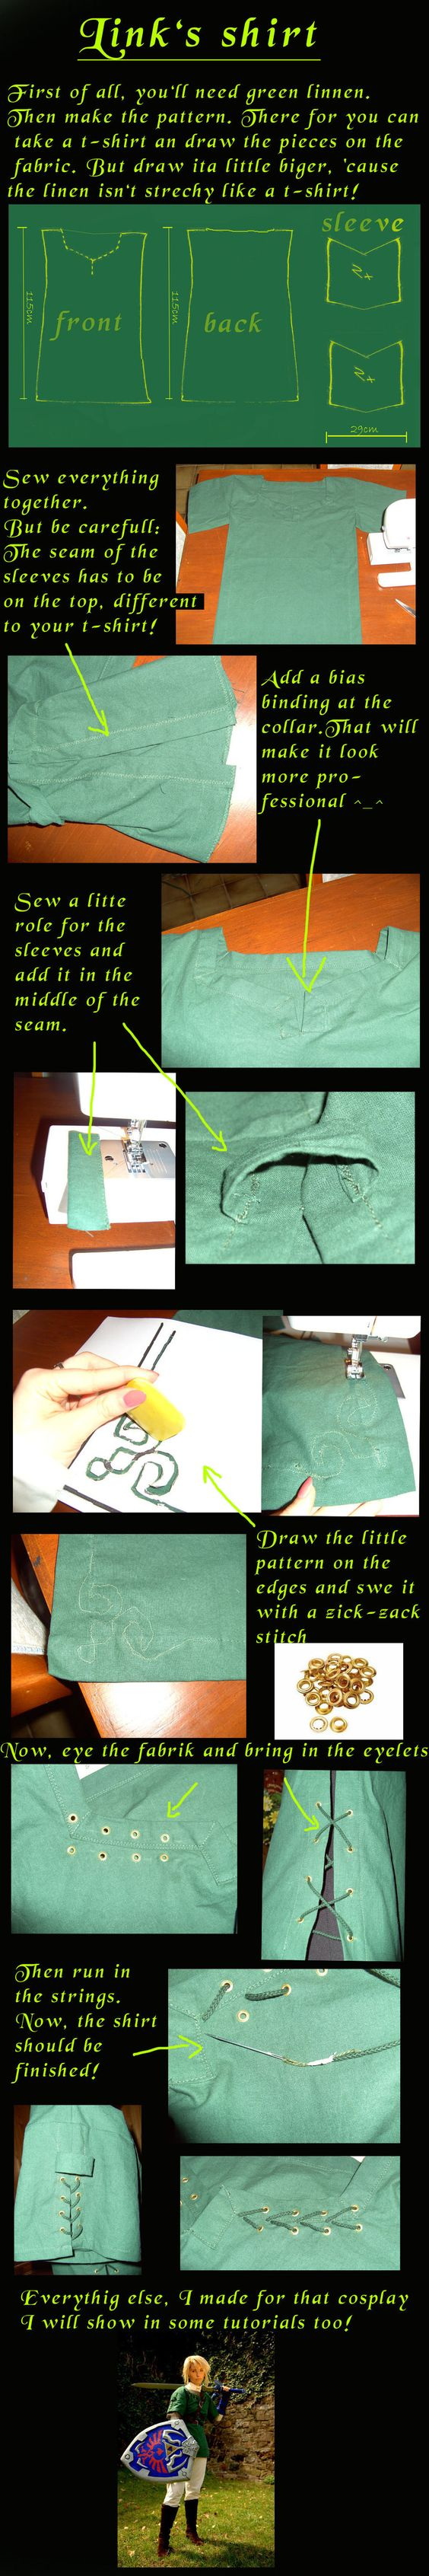 Tutorial, How to: Link's shirt by Eressea-sama on deviantART